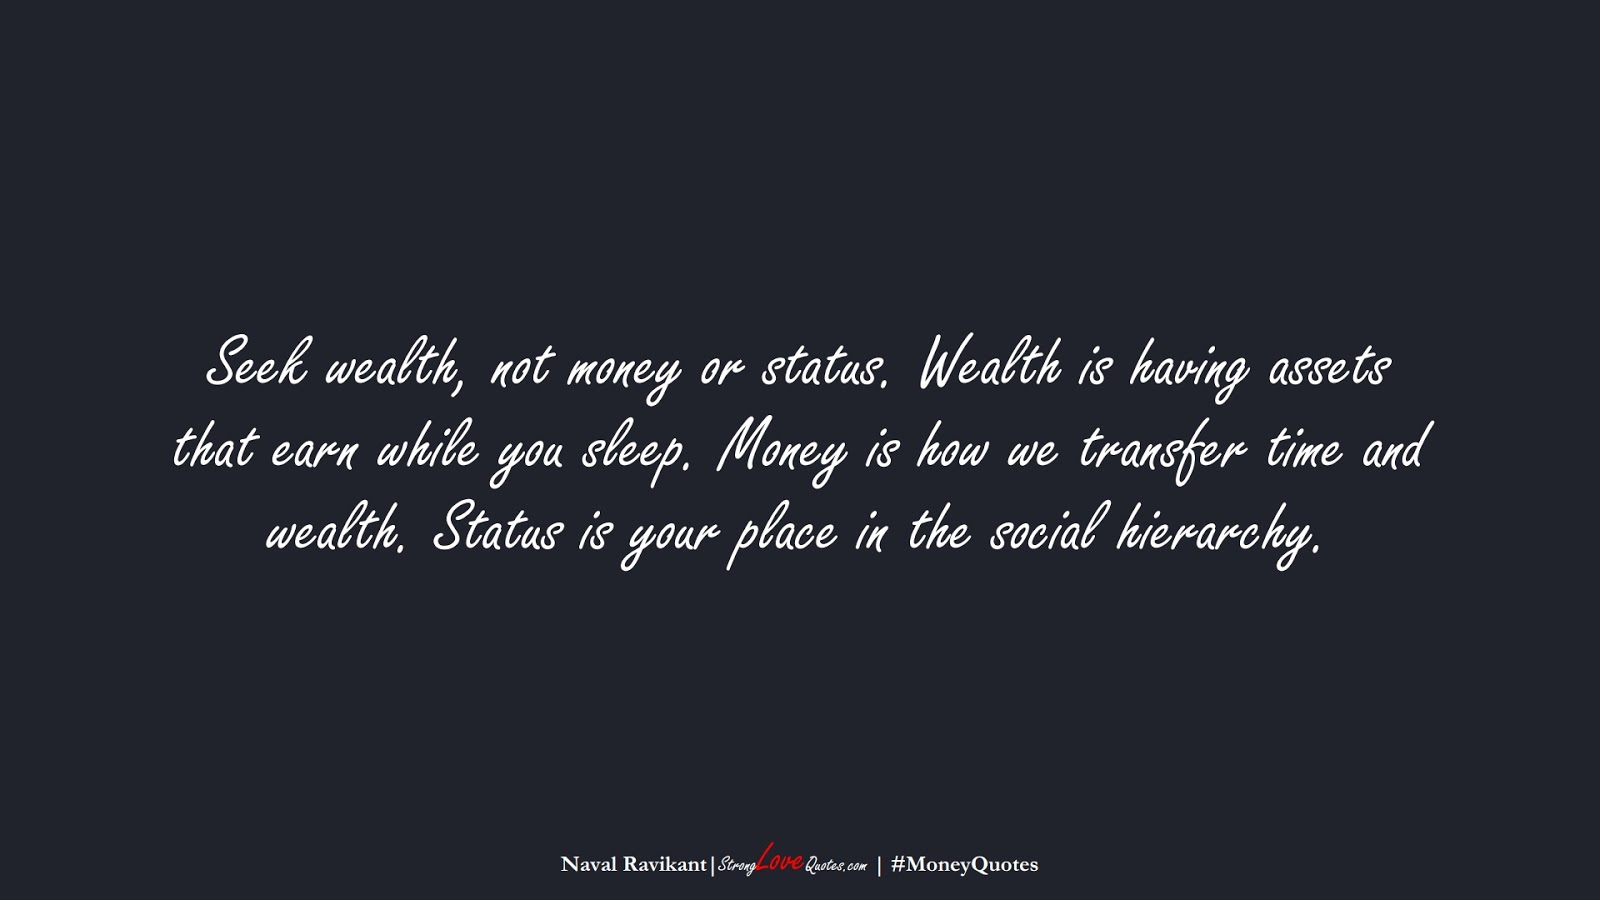 Seek wealth, not money or status. Wealth is having assets that earn while you sleep. Money is how we transfer time and wealth. Status is your place in the social hierarchy. (Naval Ravikant);  #MoneyQuotes